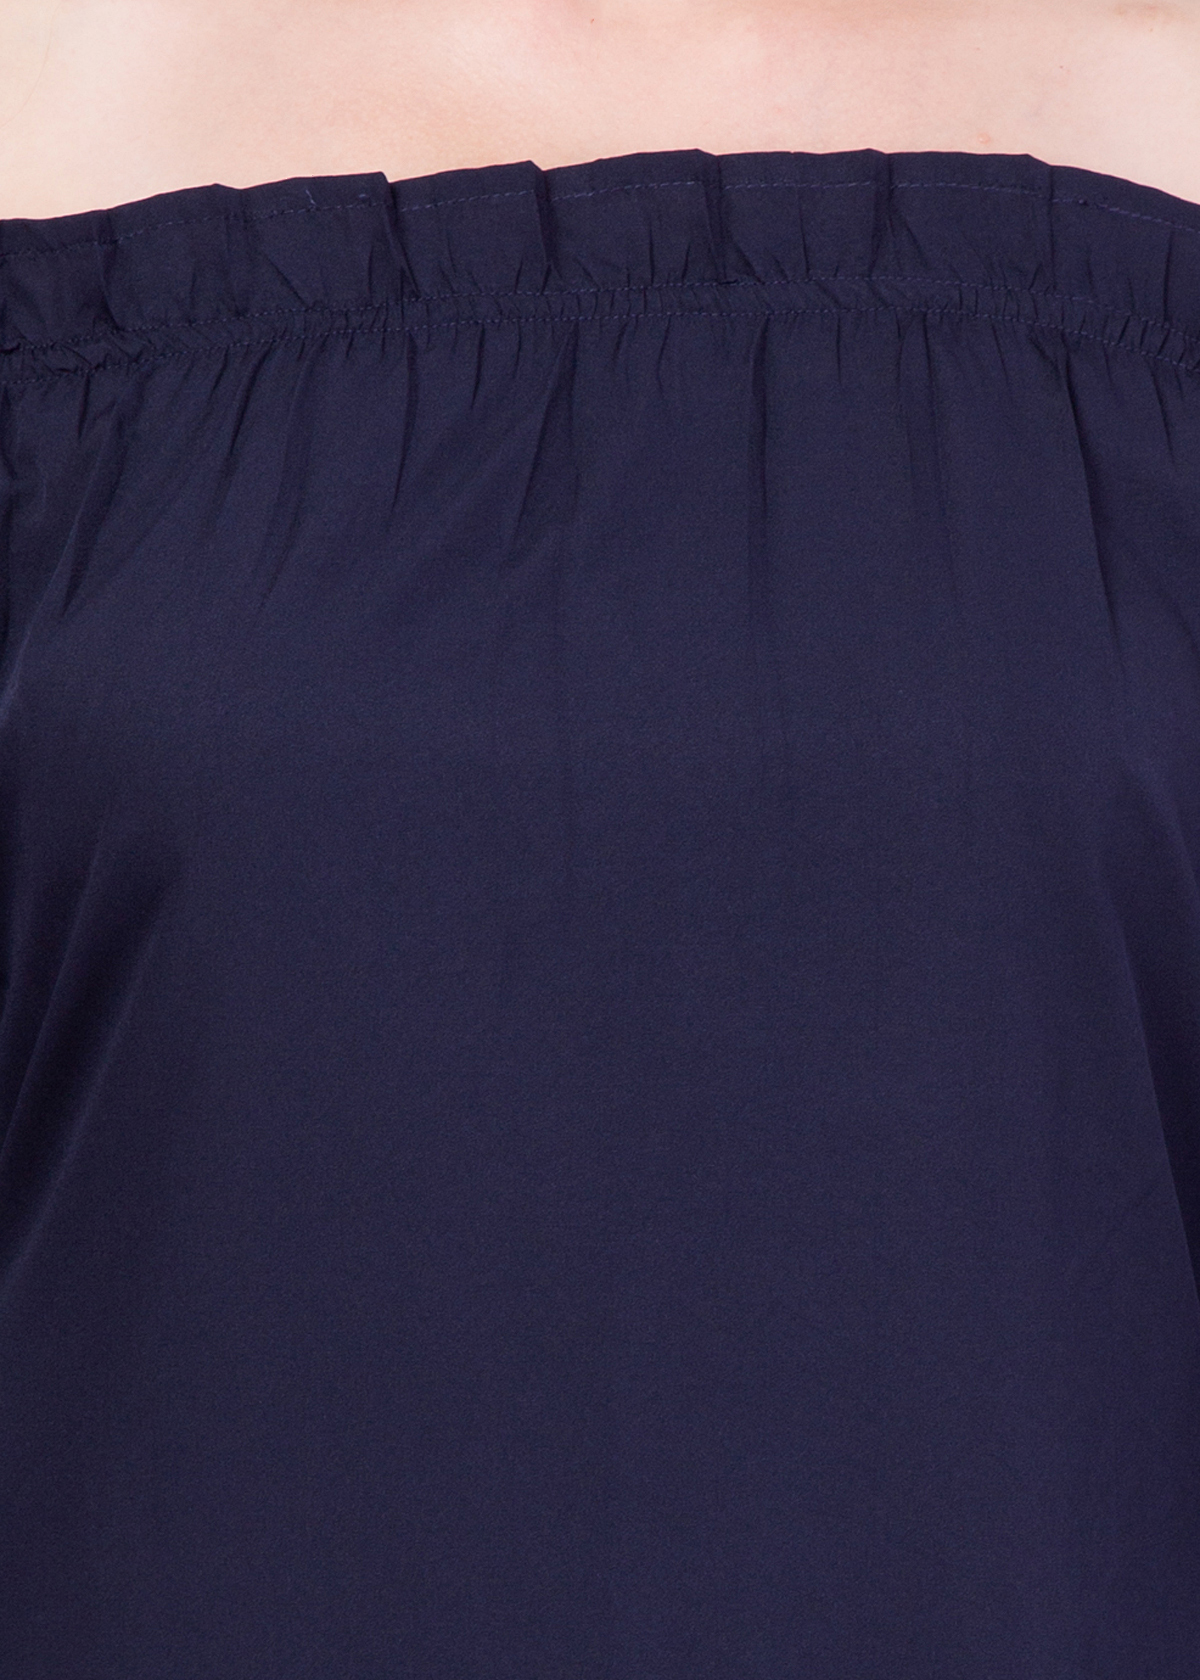 Ladies Plain Navy Dress